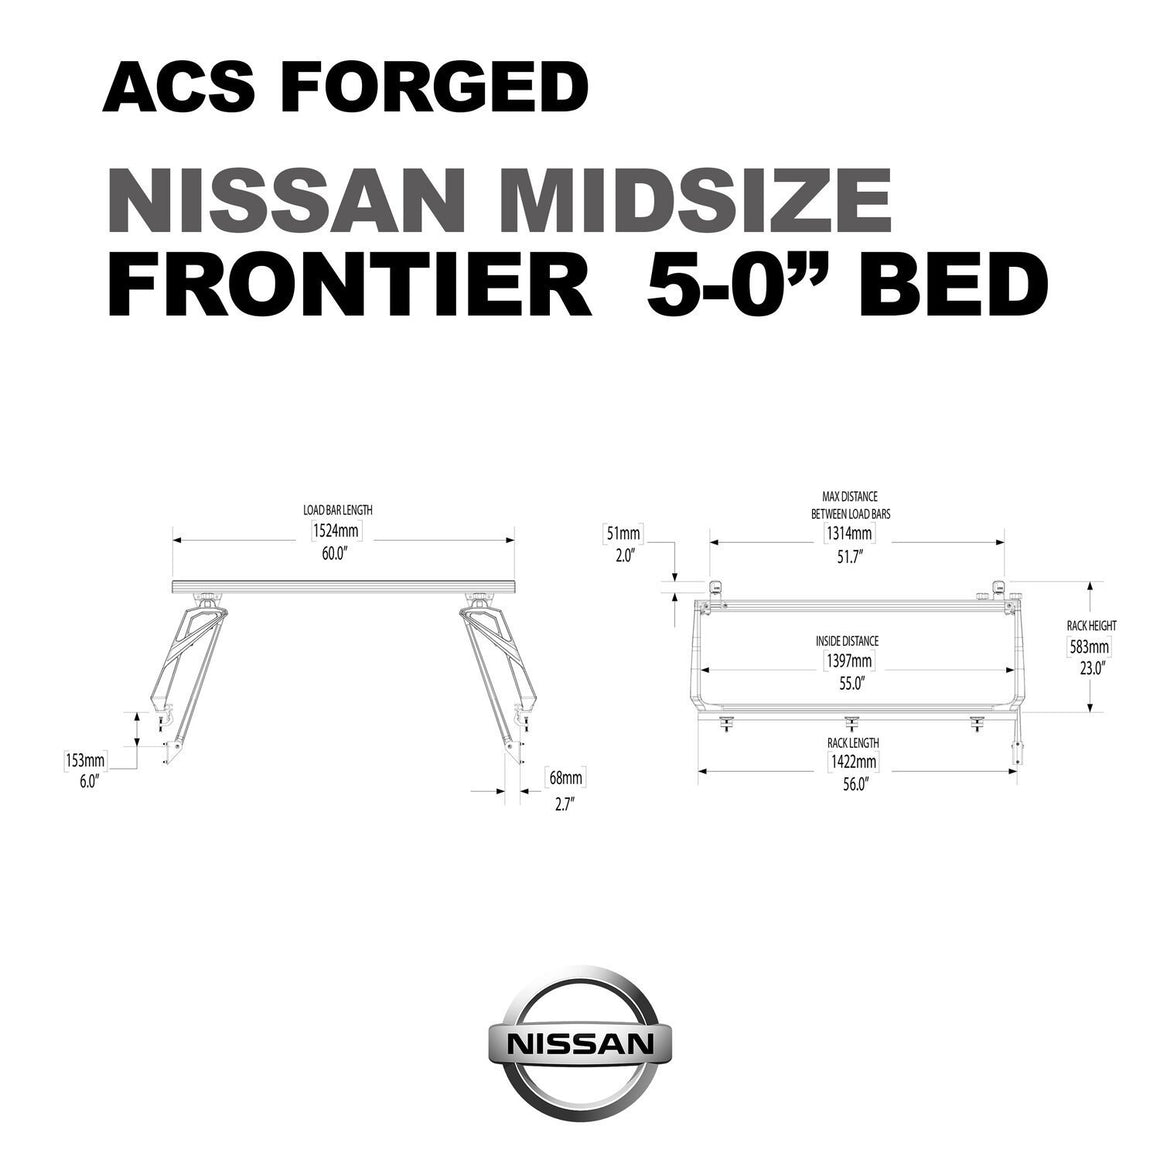 Active Cargo System - FORGED - Nissan